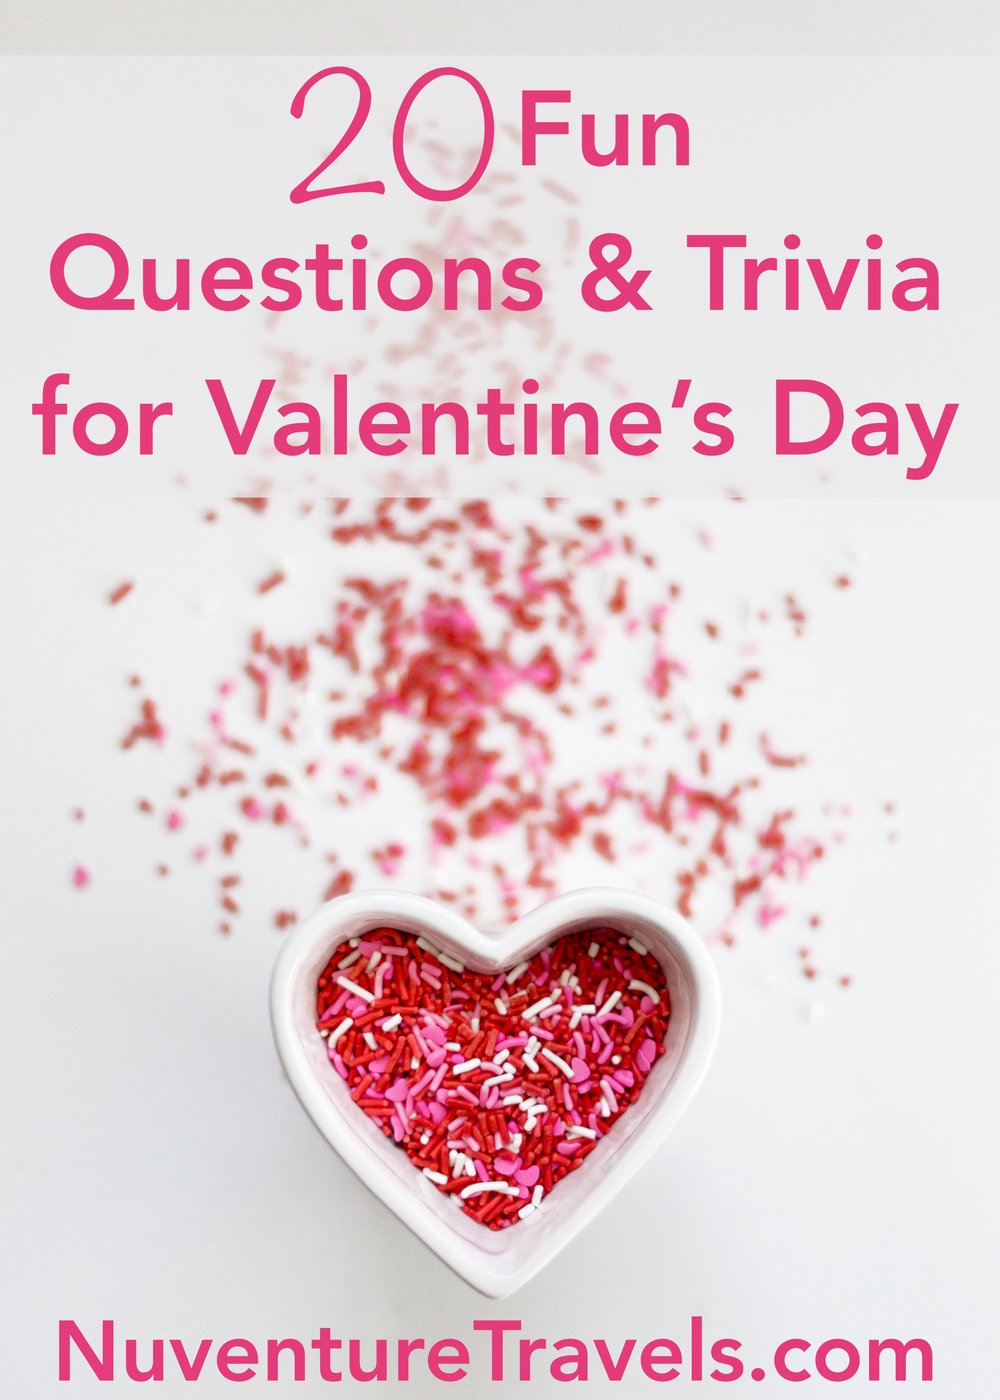 20 Fun Questions & Trivia for Valentine's Day Date